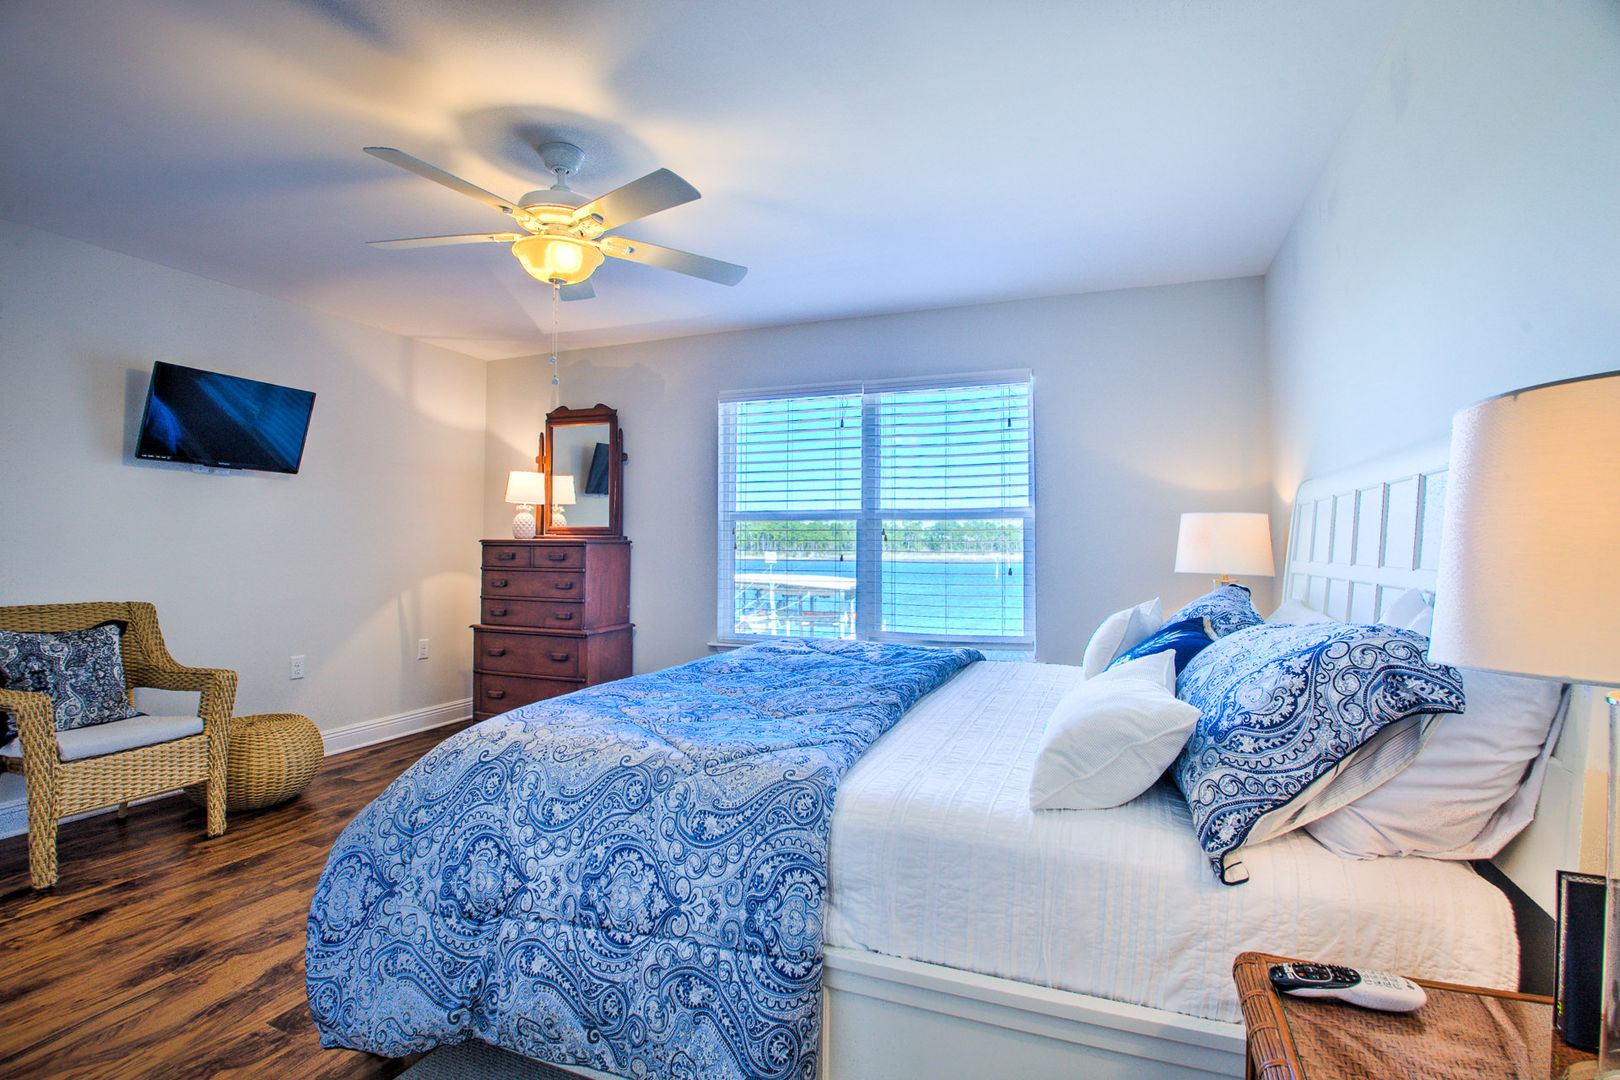 Master Bedroom Features Plenty of Natural Light From Windows.